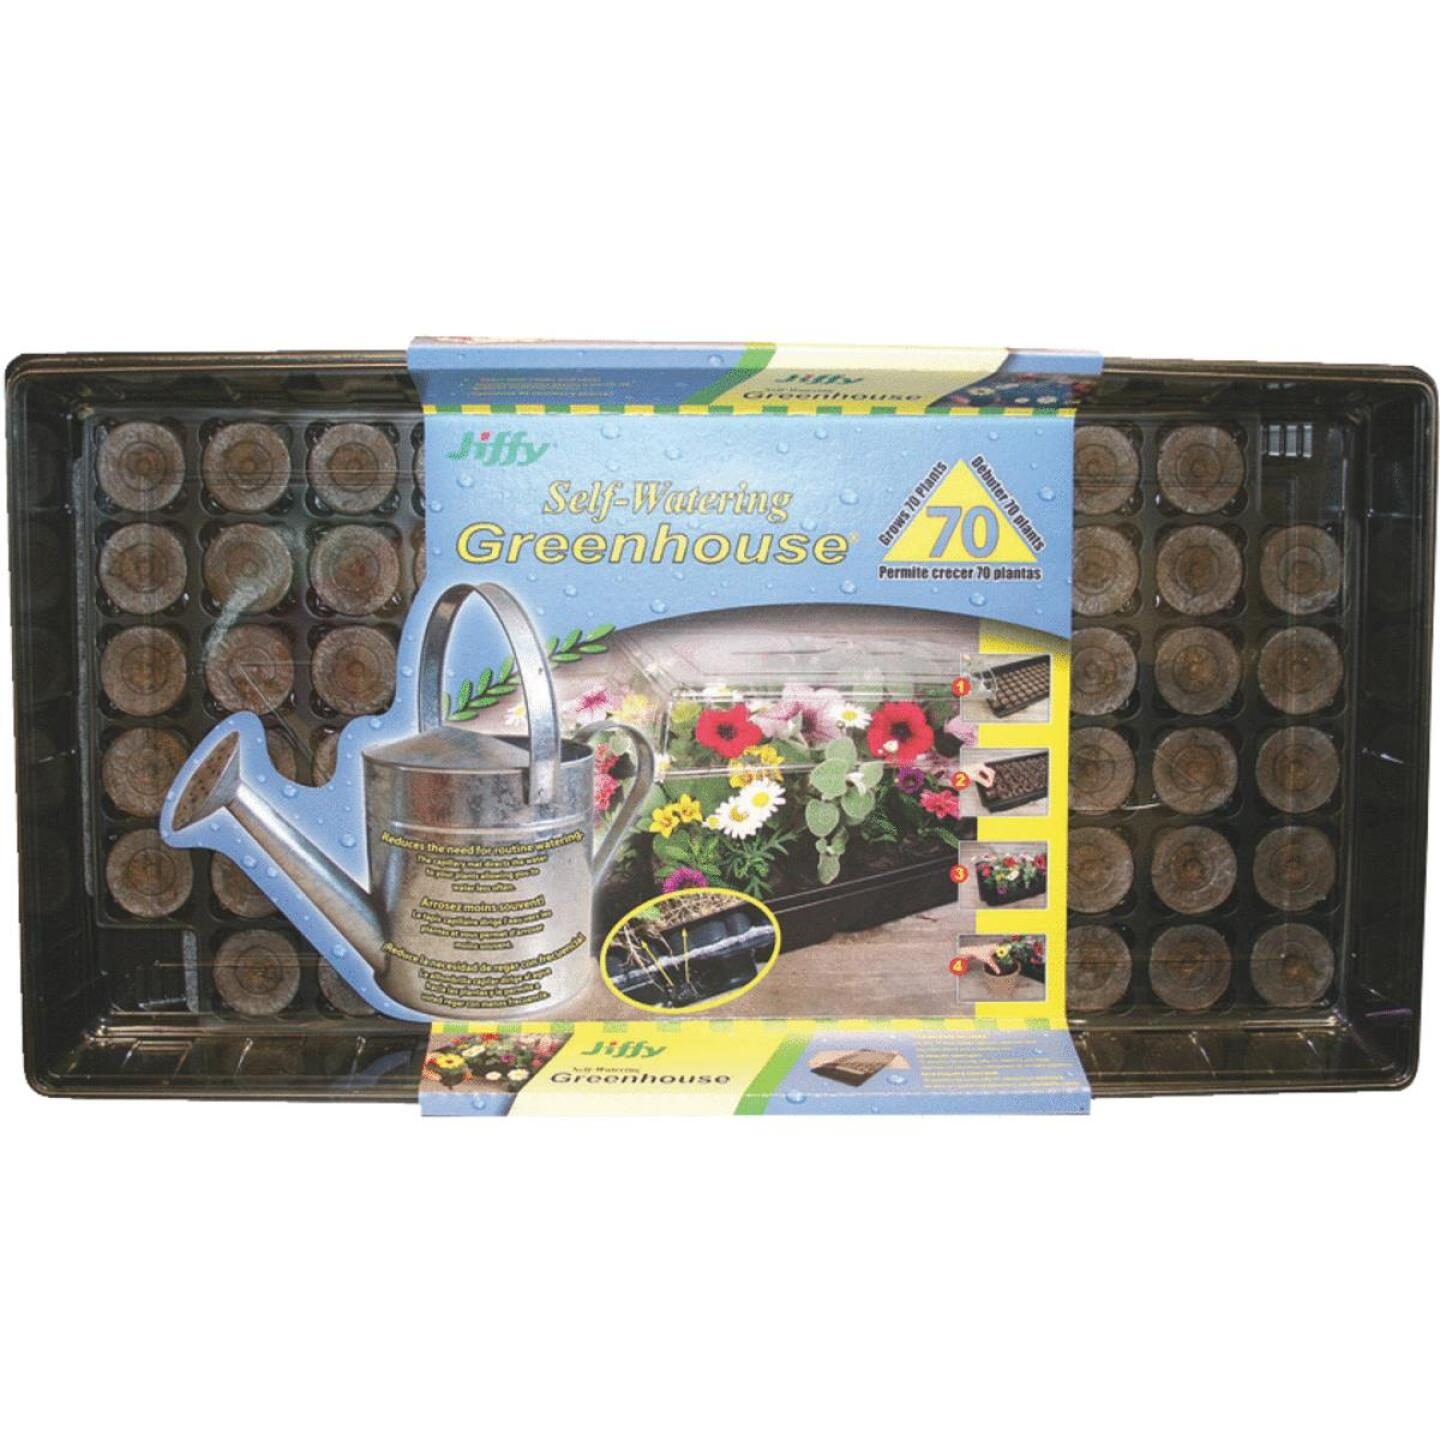 Jiffy 70-Cell Self-Watering Greenhouse Seed Starter Kit Image 1